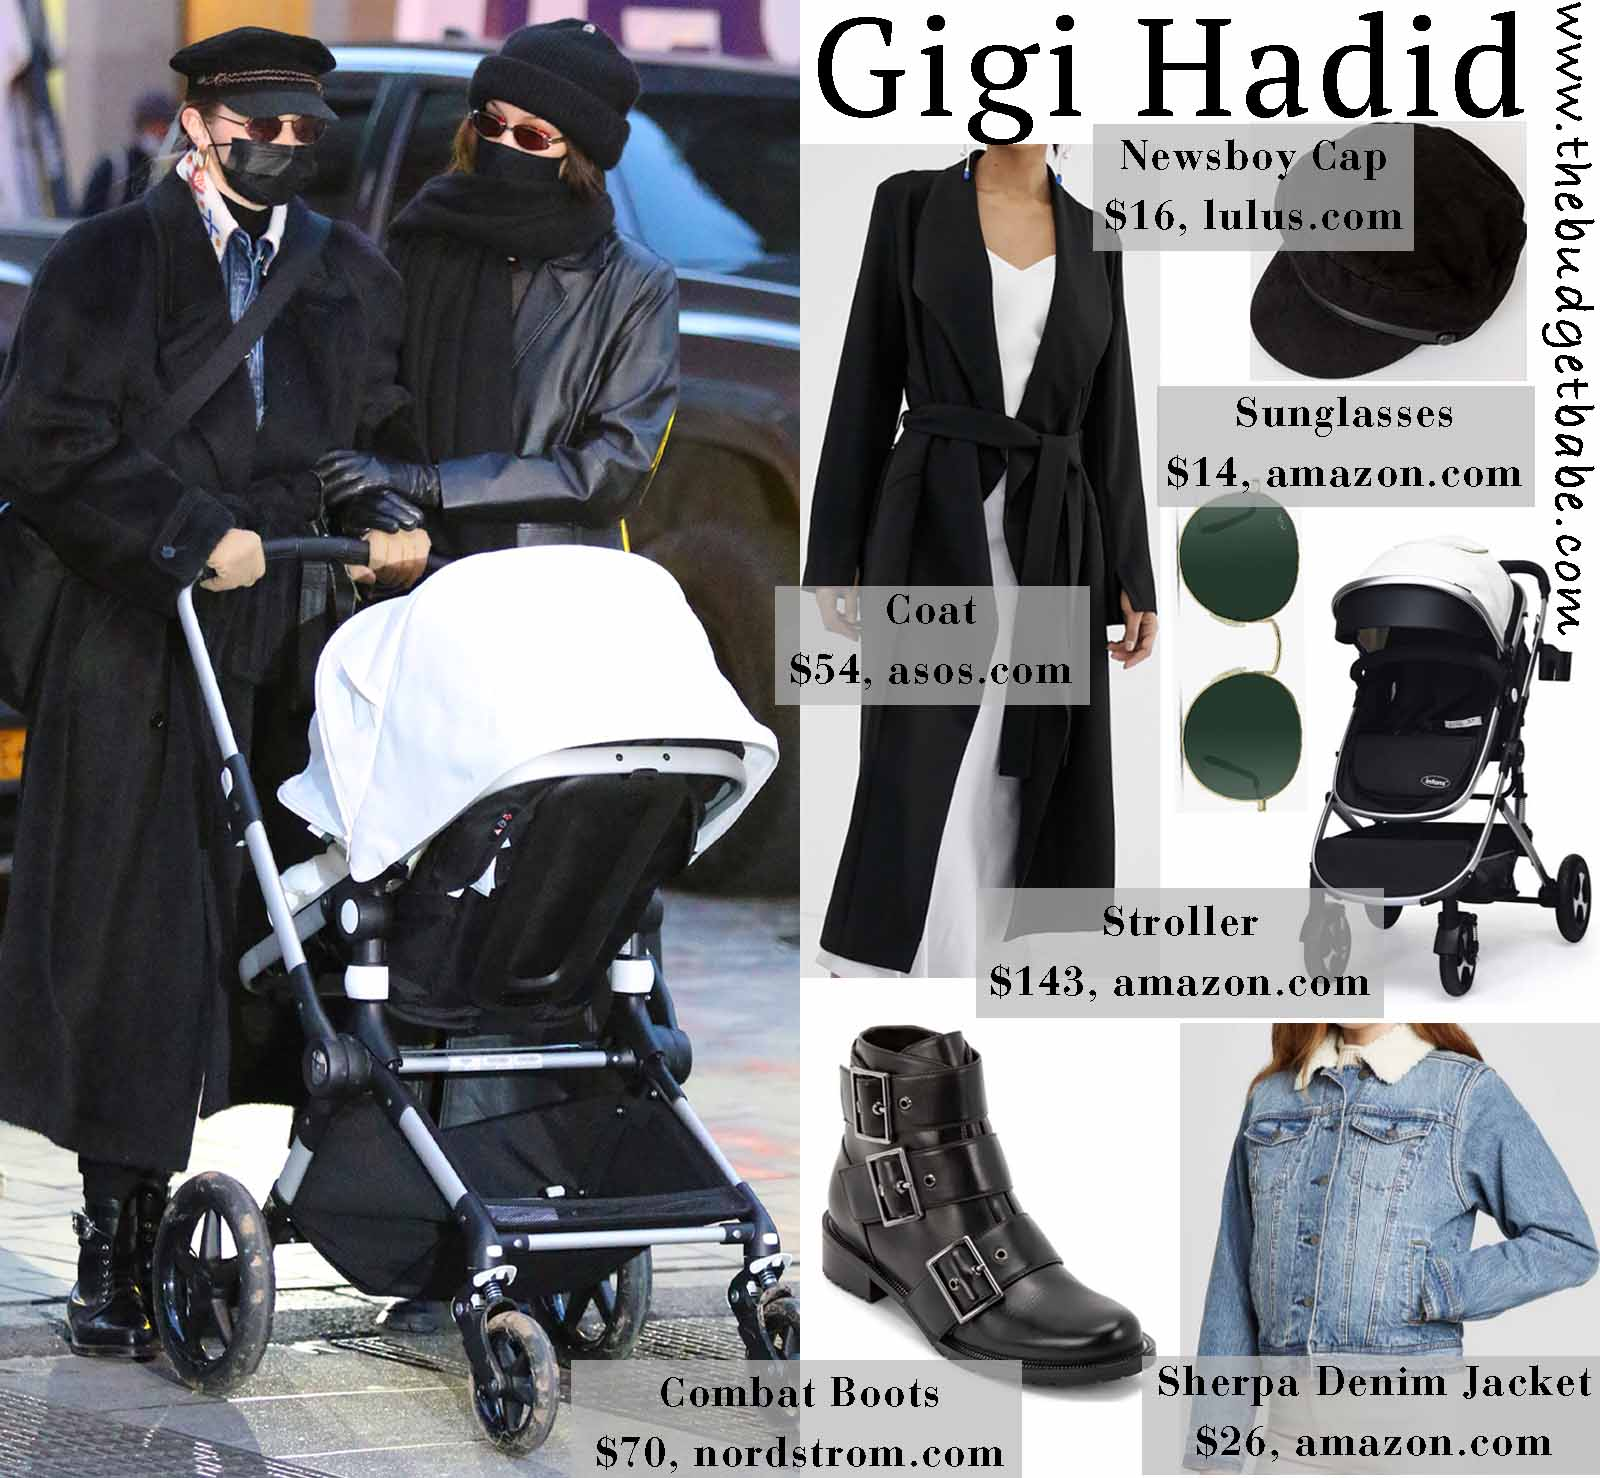 Gigi Hadid's Bugaboo stroller is so chic.